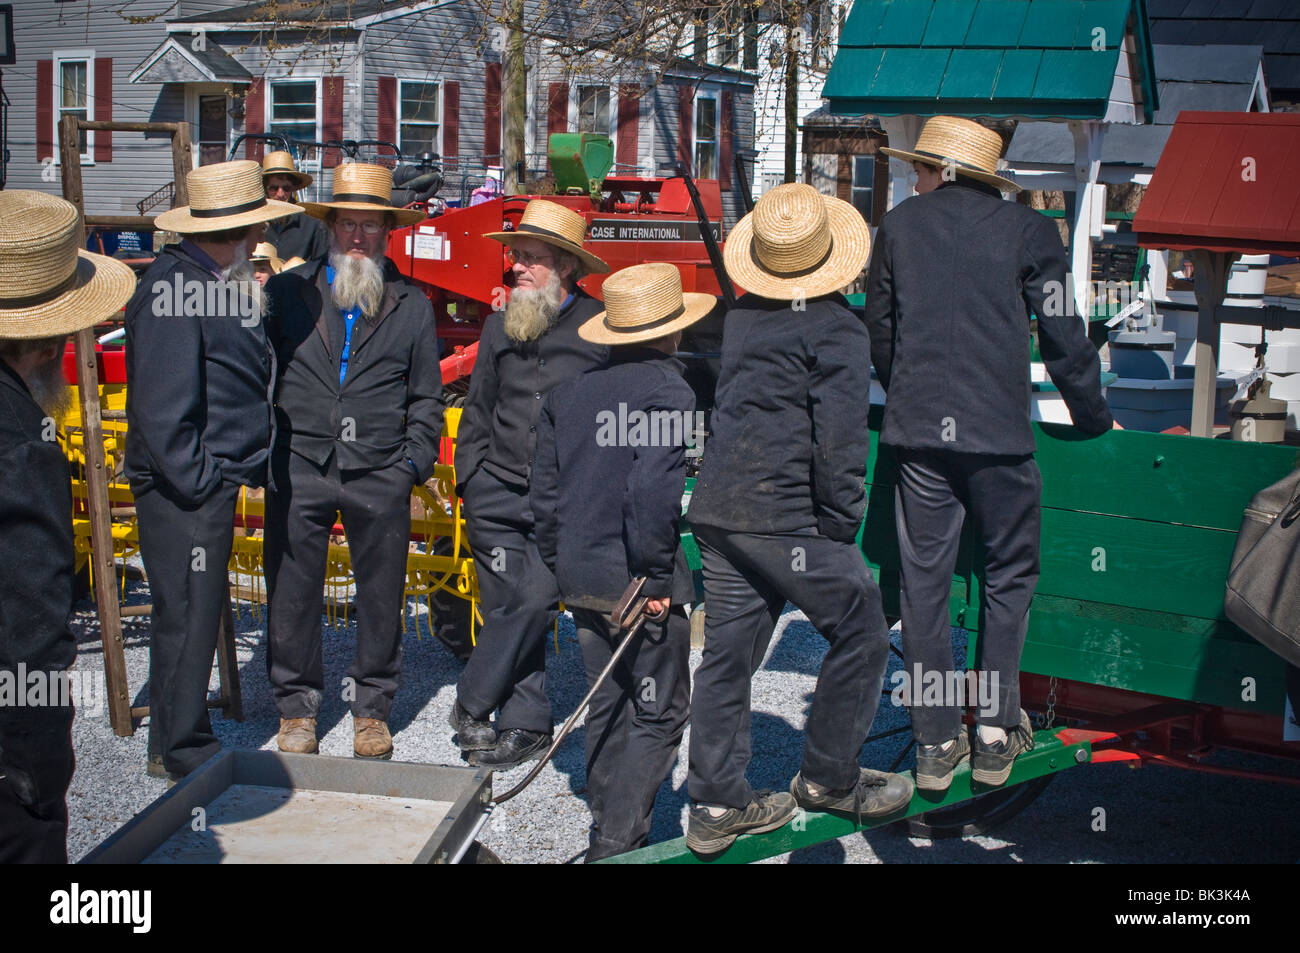 Local volunteer fire companies raise funds through what have affectionately come to be known as Mud Sales. Stock Photo